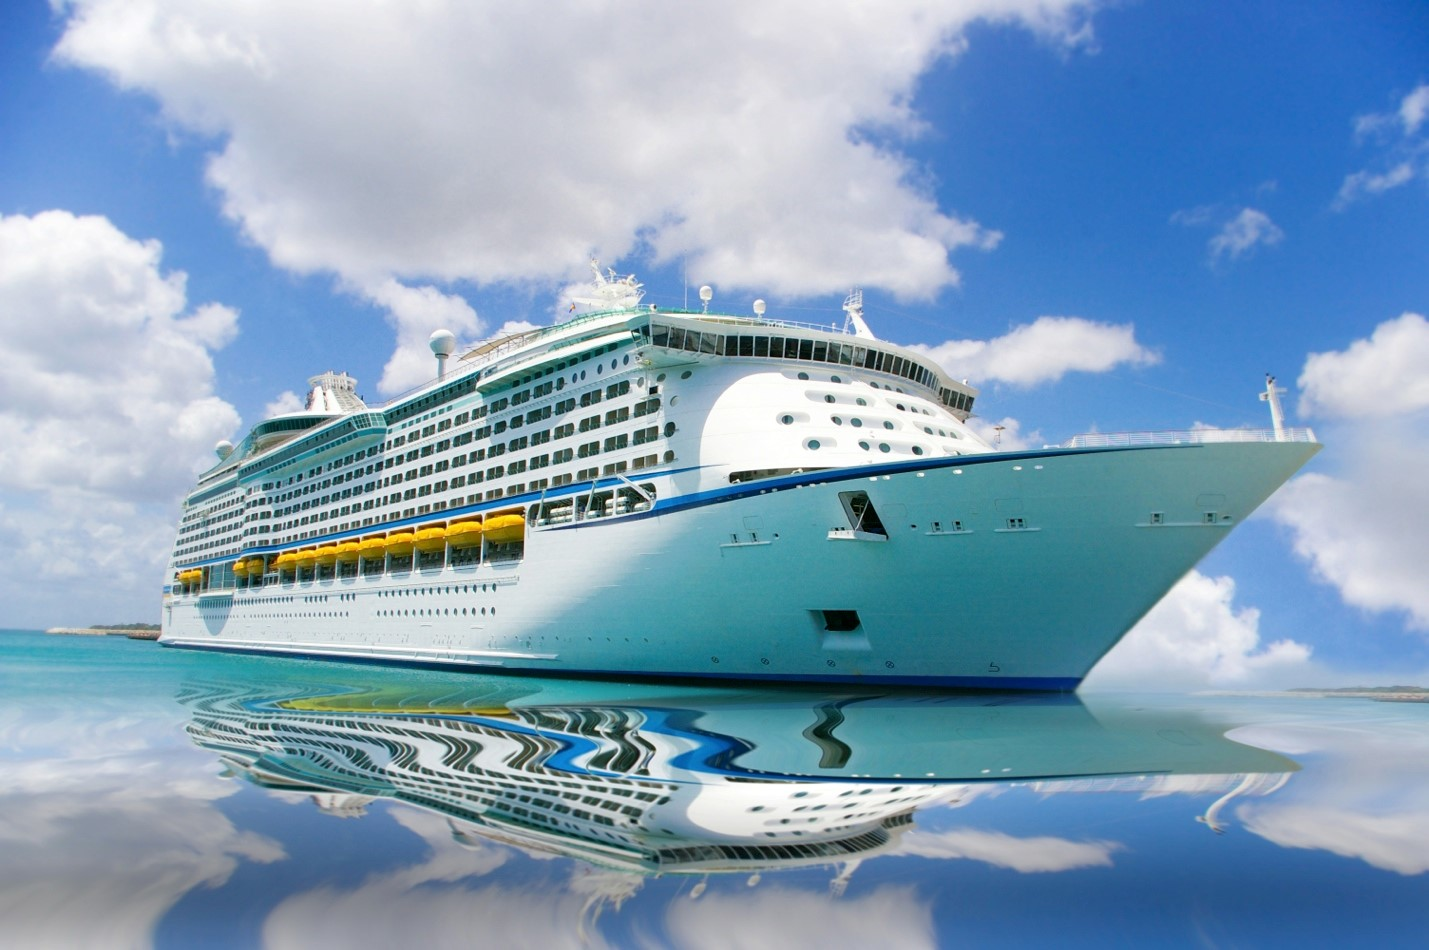 Wave Season - Start Planning Now for Your Summer Cruise